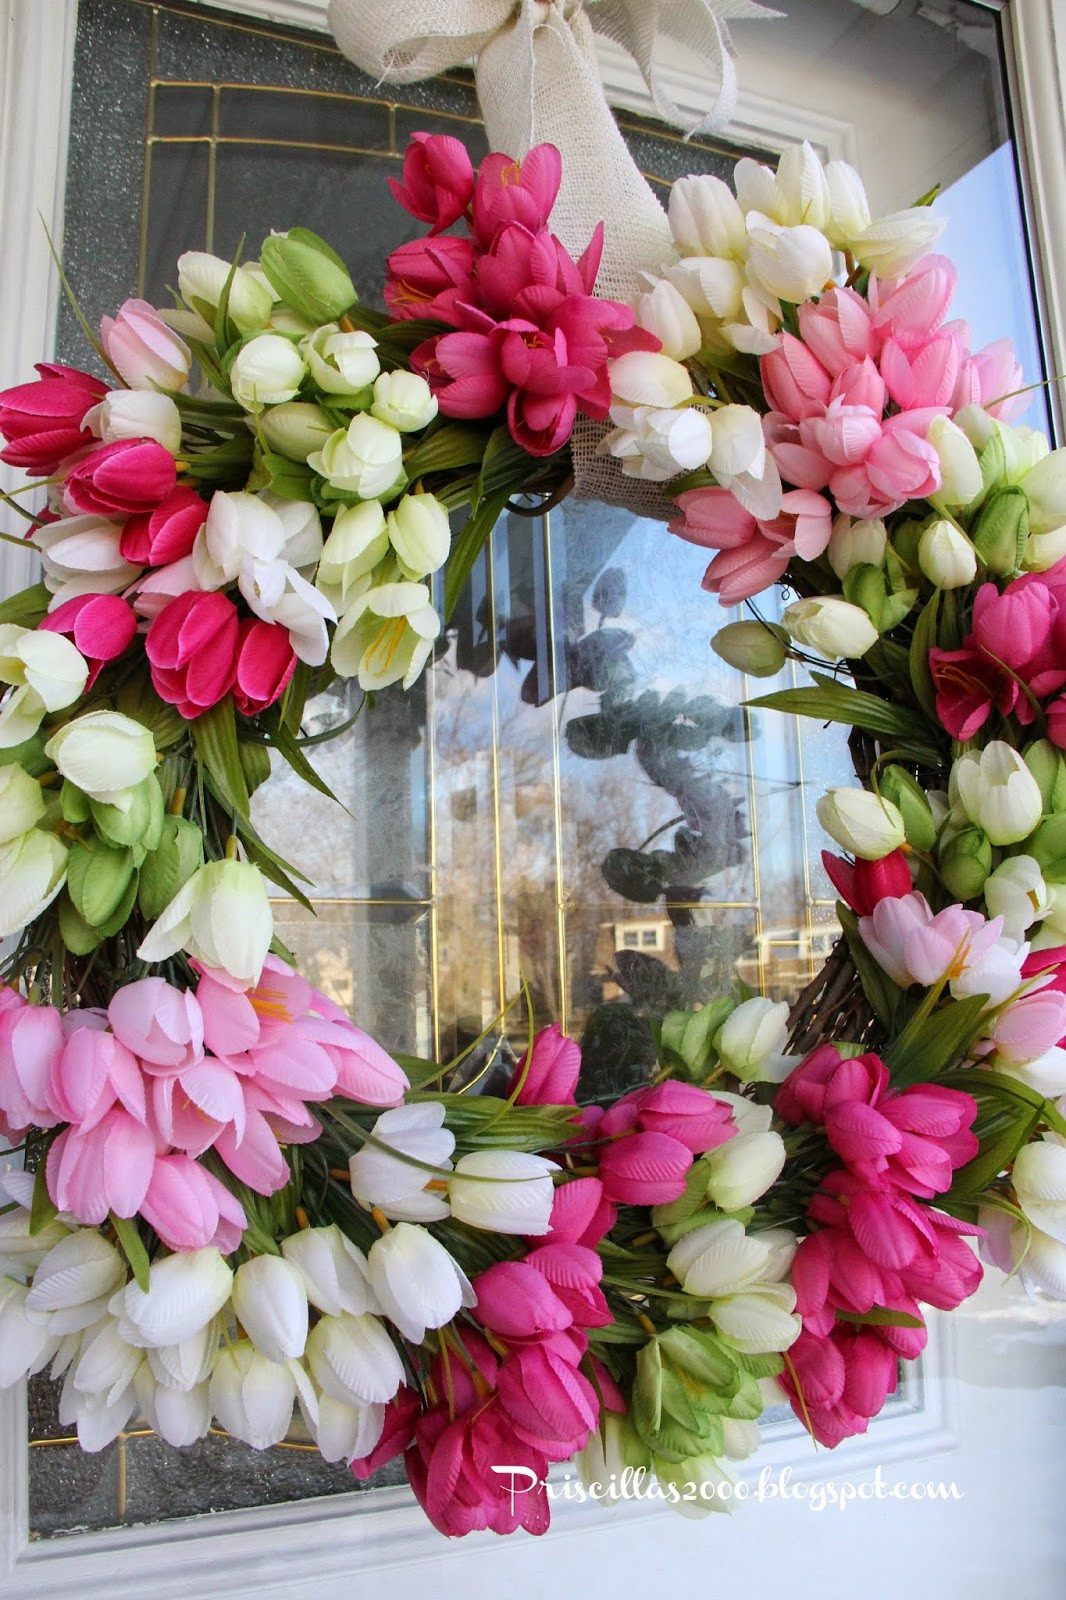 Best ideas about DIY Spring Wreath . Save or Pin Priscillas DIY Spring Wreaths Now.